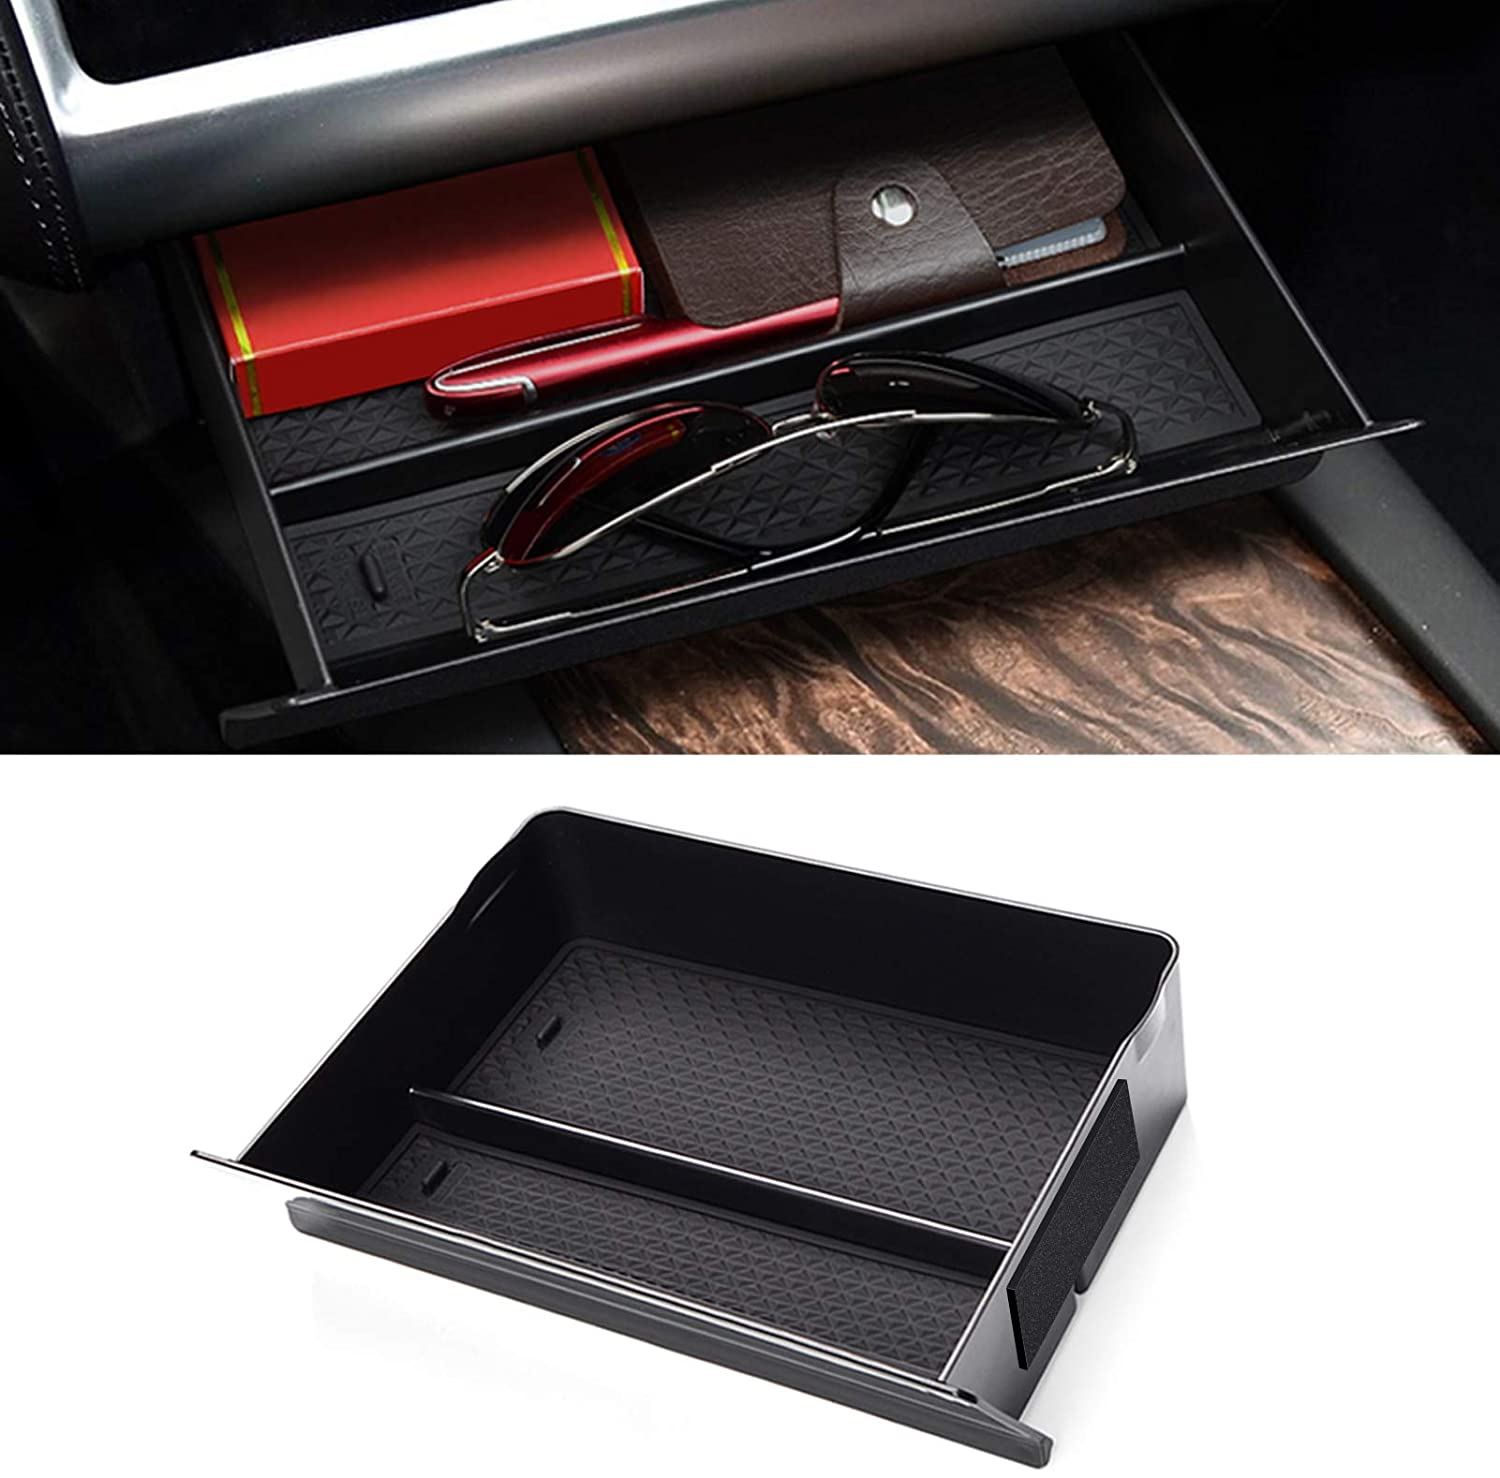 Wooden Cubby Compartment Storage Glasses Box for Tesla Model S Model X Leather Black Car Center Console Drawer Center Container Organizer